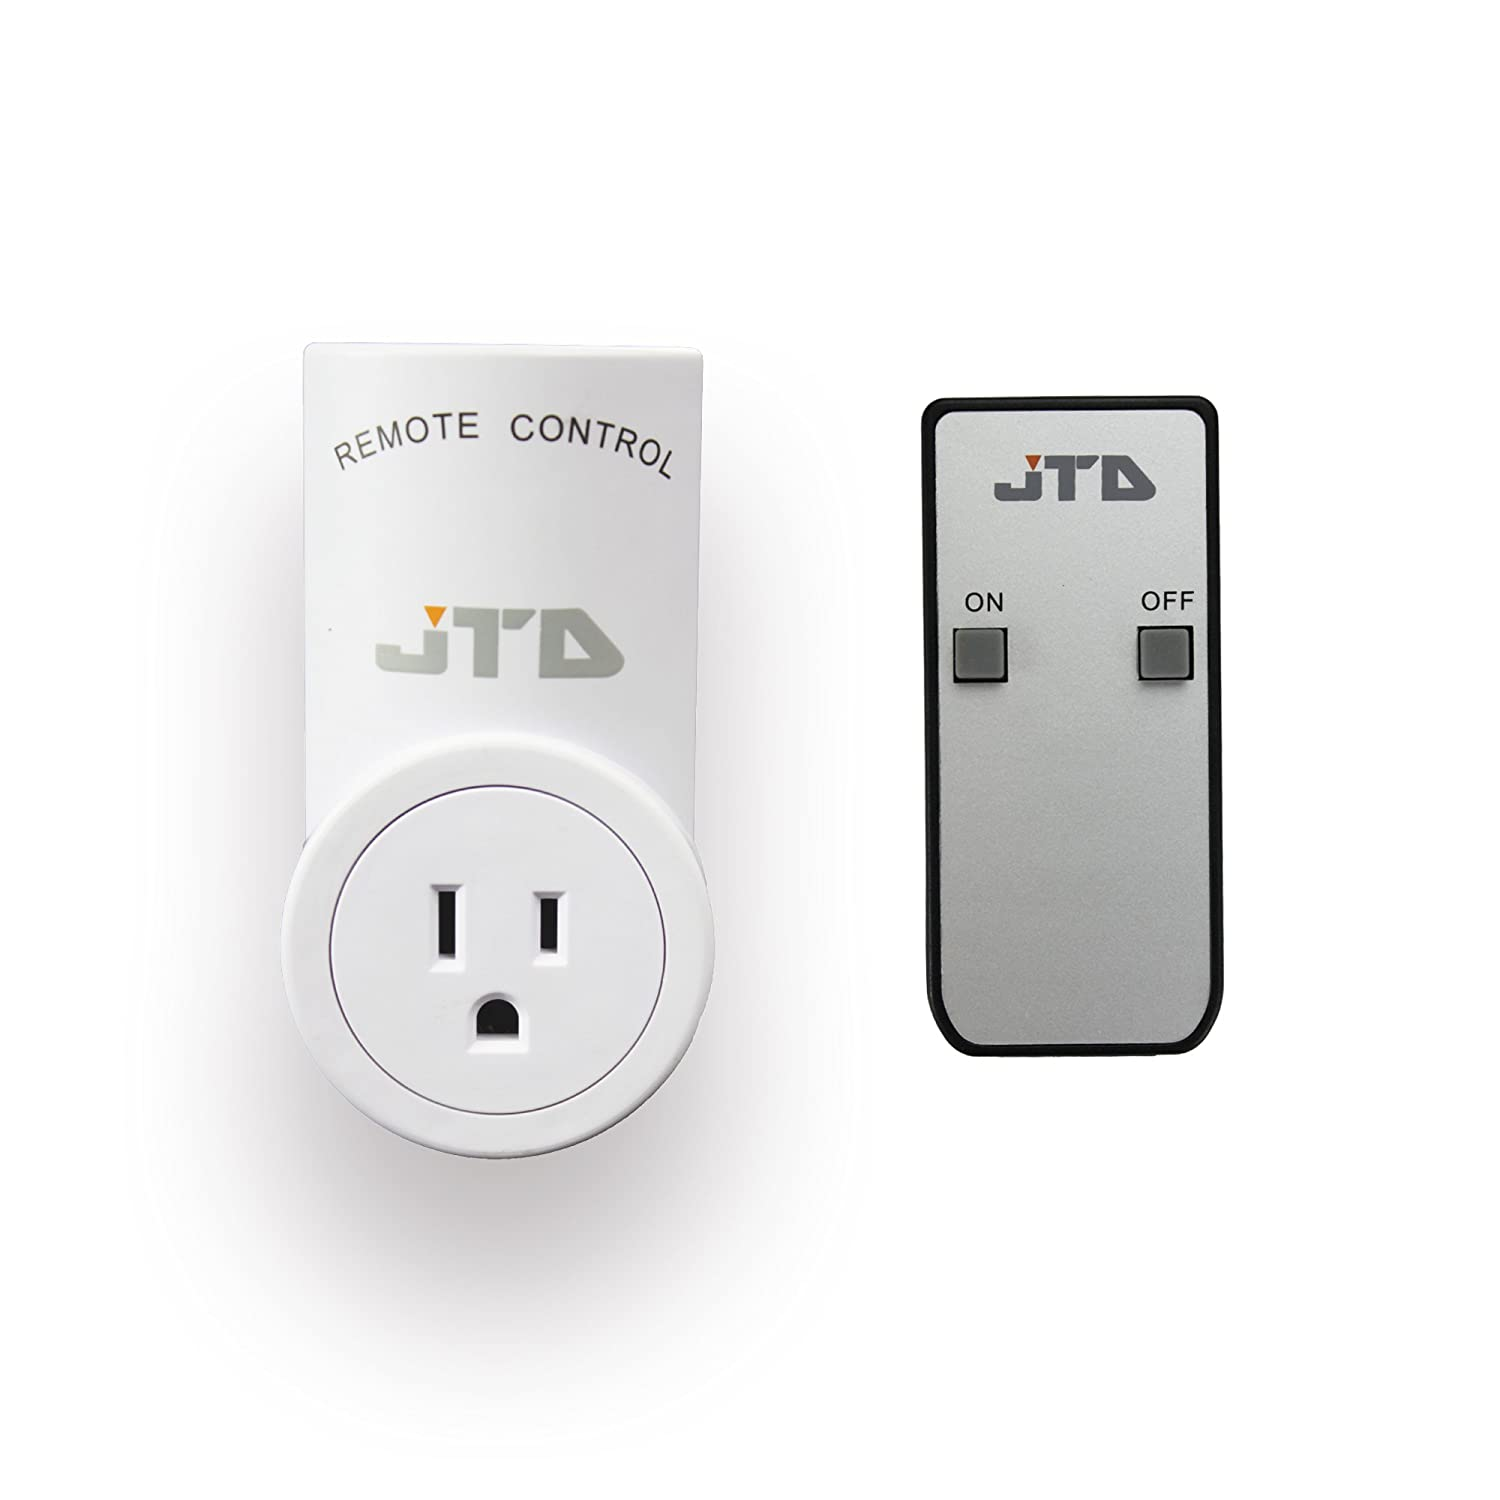 jtd wireless remote control electrical outlet switch. Black Bedroom Furniture Sets. Home Design Ideas